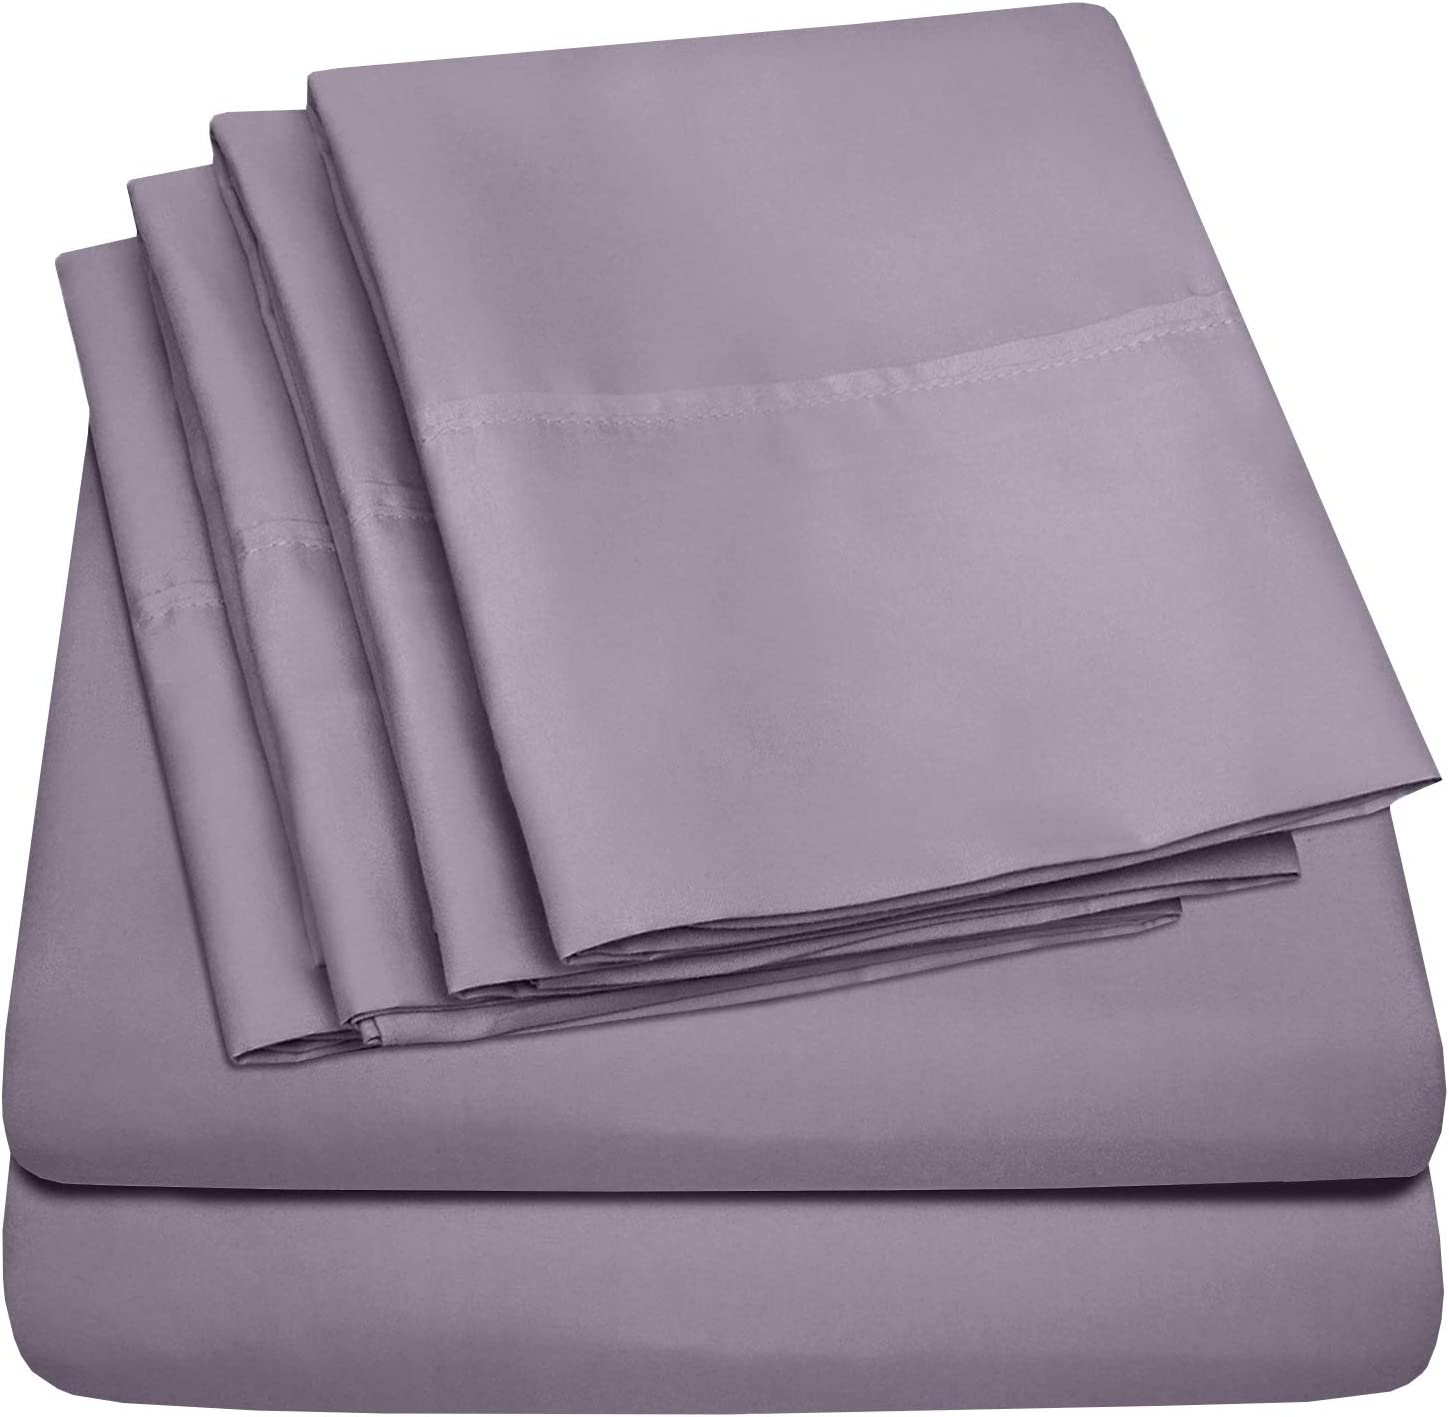 Cal King Size Bed Sheets - 6 Piece 1500 Thread Count Fine Brushed Microfiber Deep Pocket California King Sheet Set Bedding - 2 Extra Pillow Cases, Great Value, California King, Plum